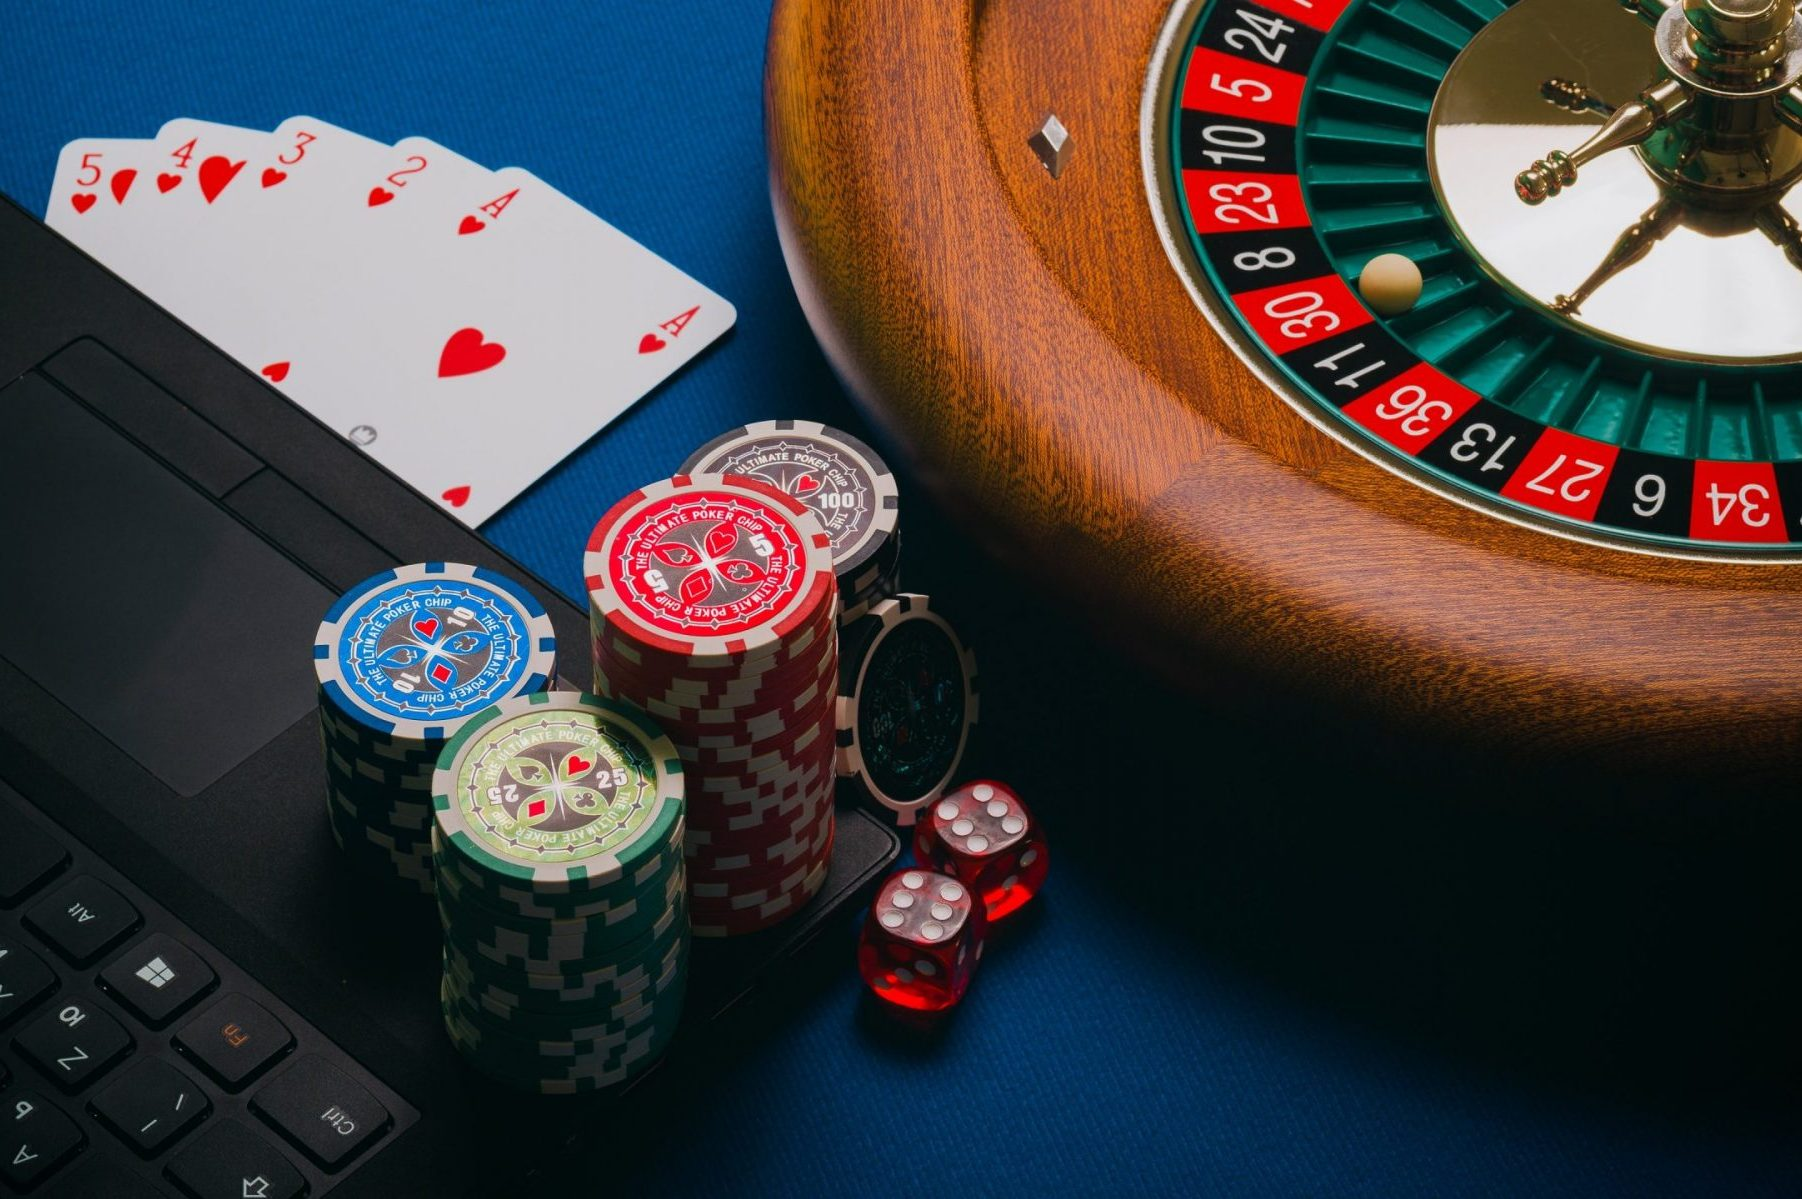 in an article about nice online casino games, a roulette wheel, playing cards and casino chips